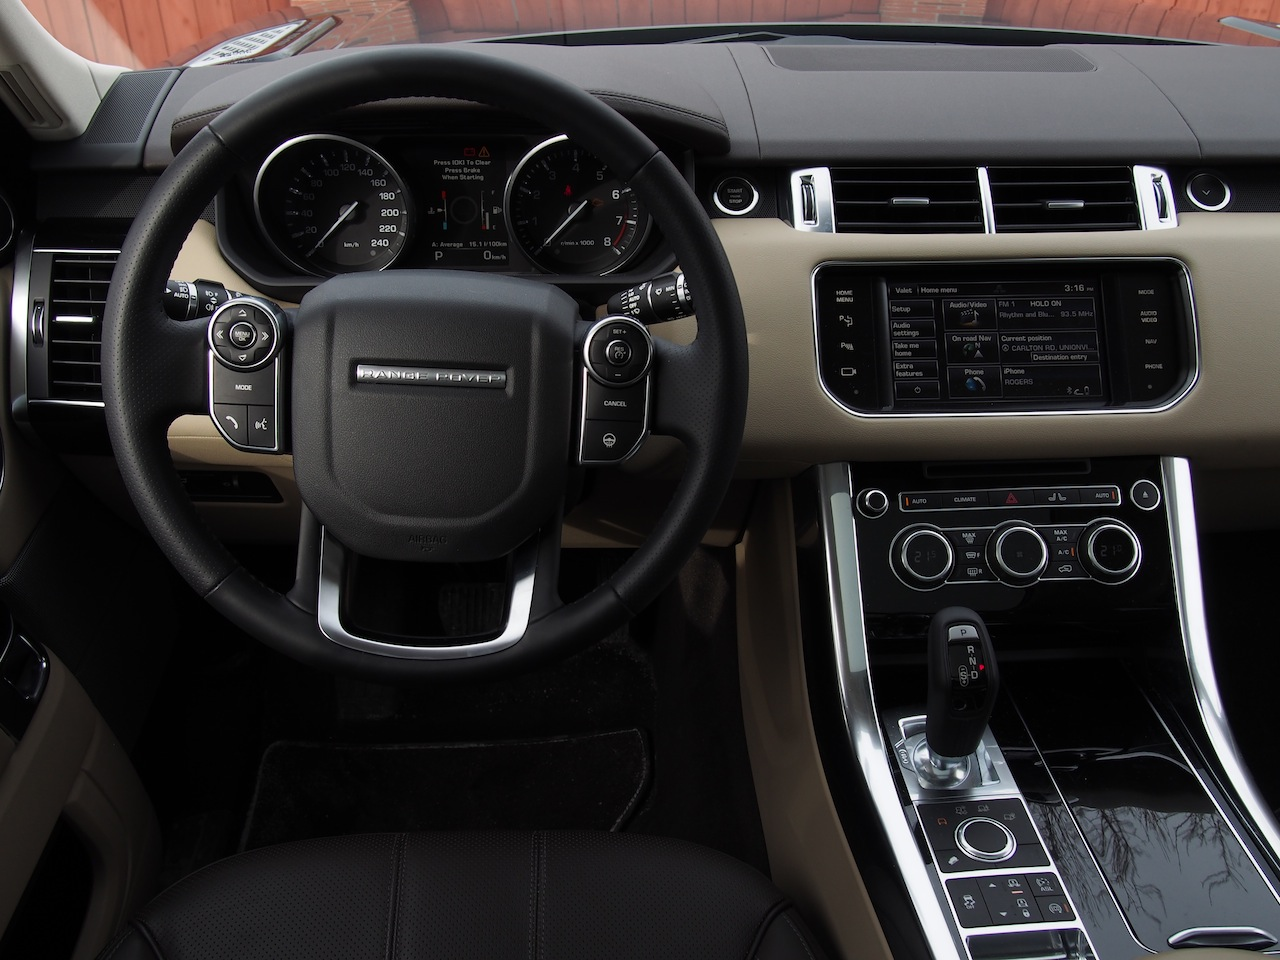 2014 Range Rover Sport V6 Hse Cars Photos Test Drives And Reviews Canadian Auto Review